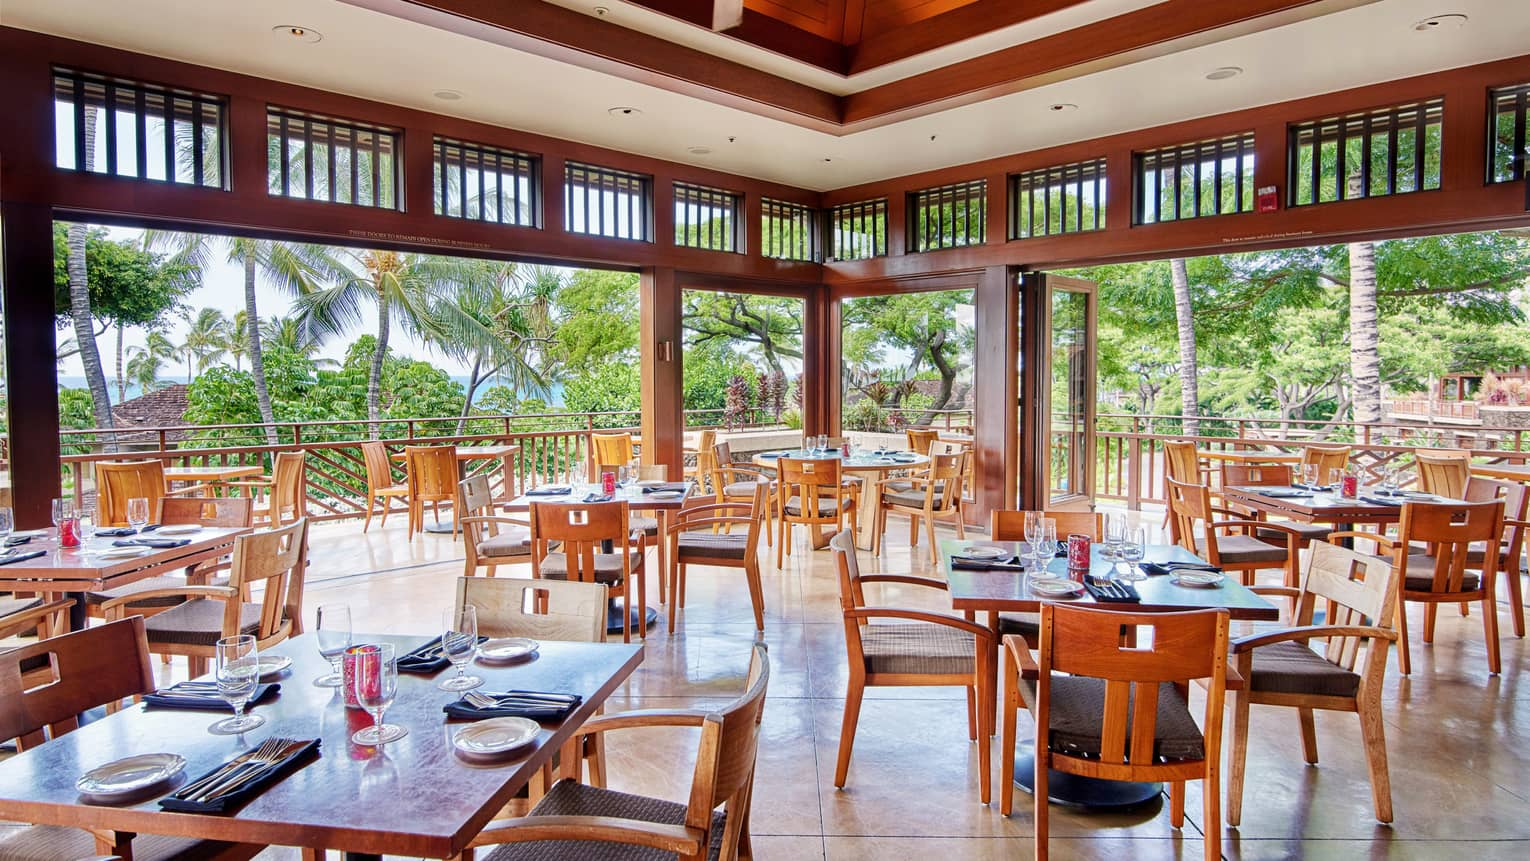 Hualalai Grille open-air dining room under tall wood ceilings